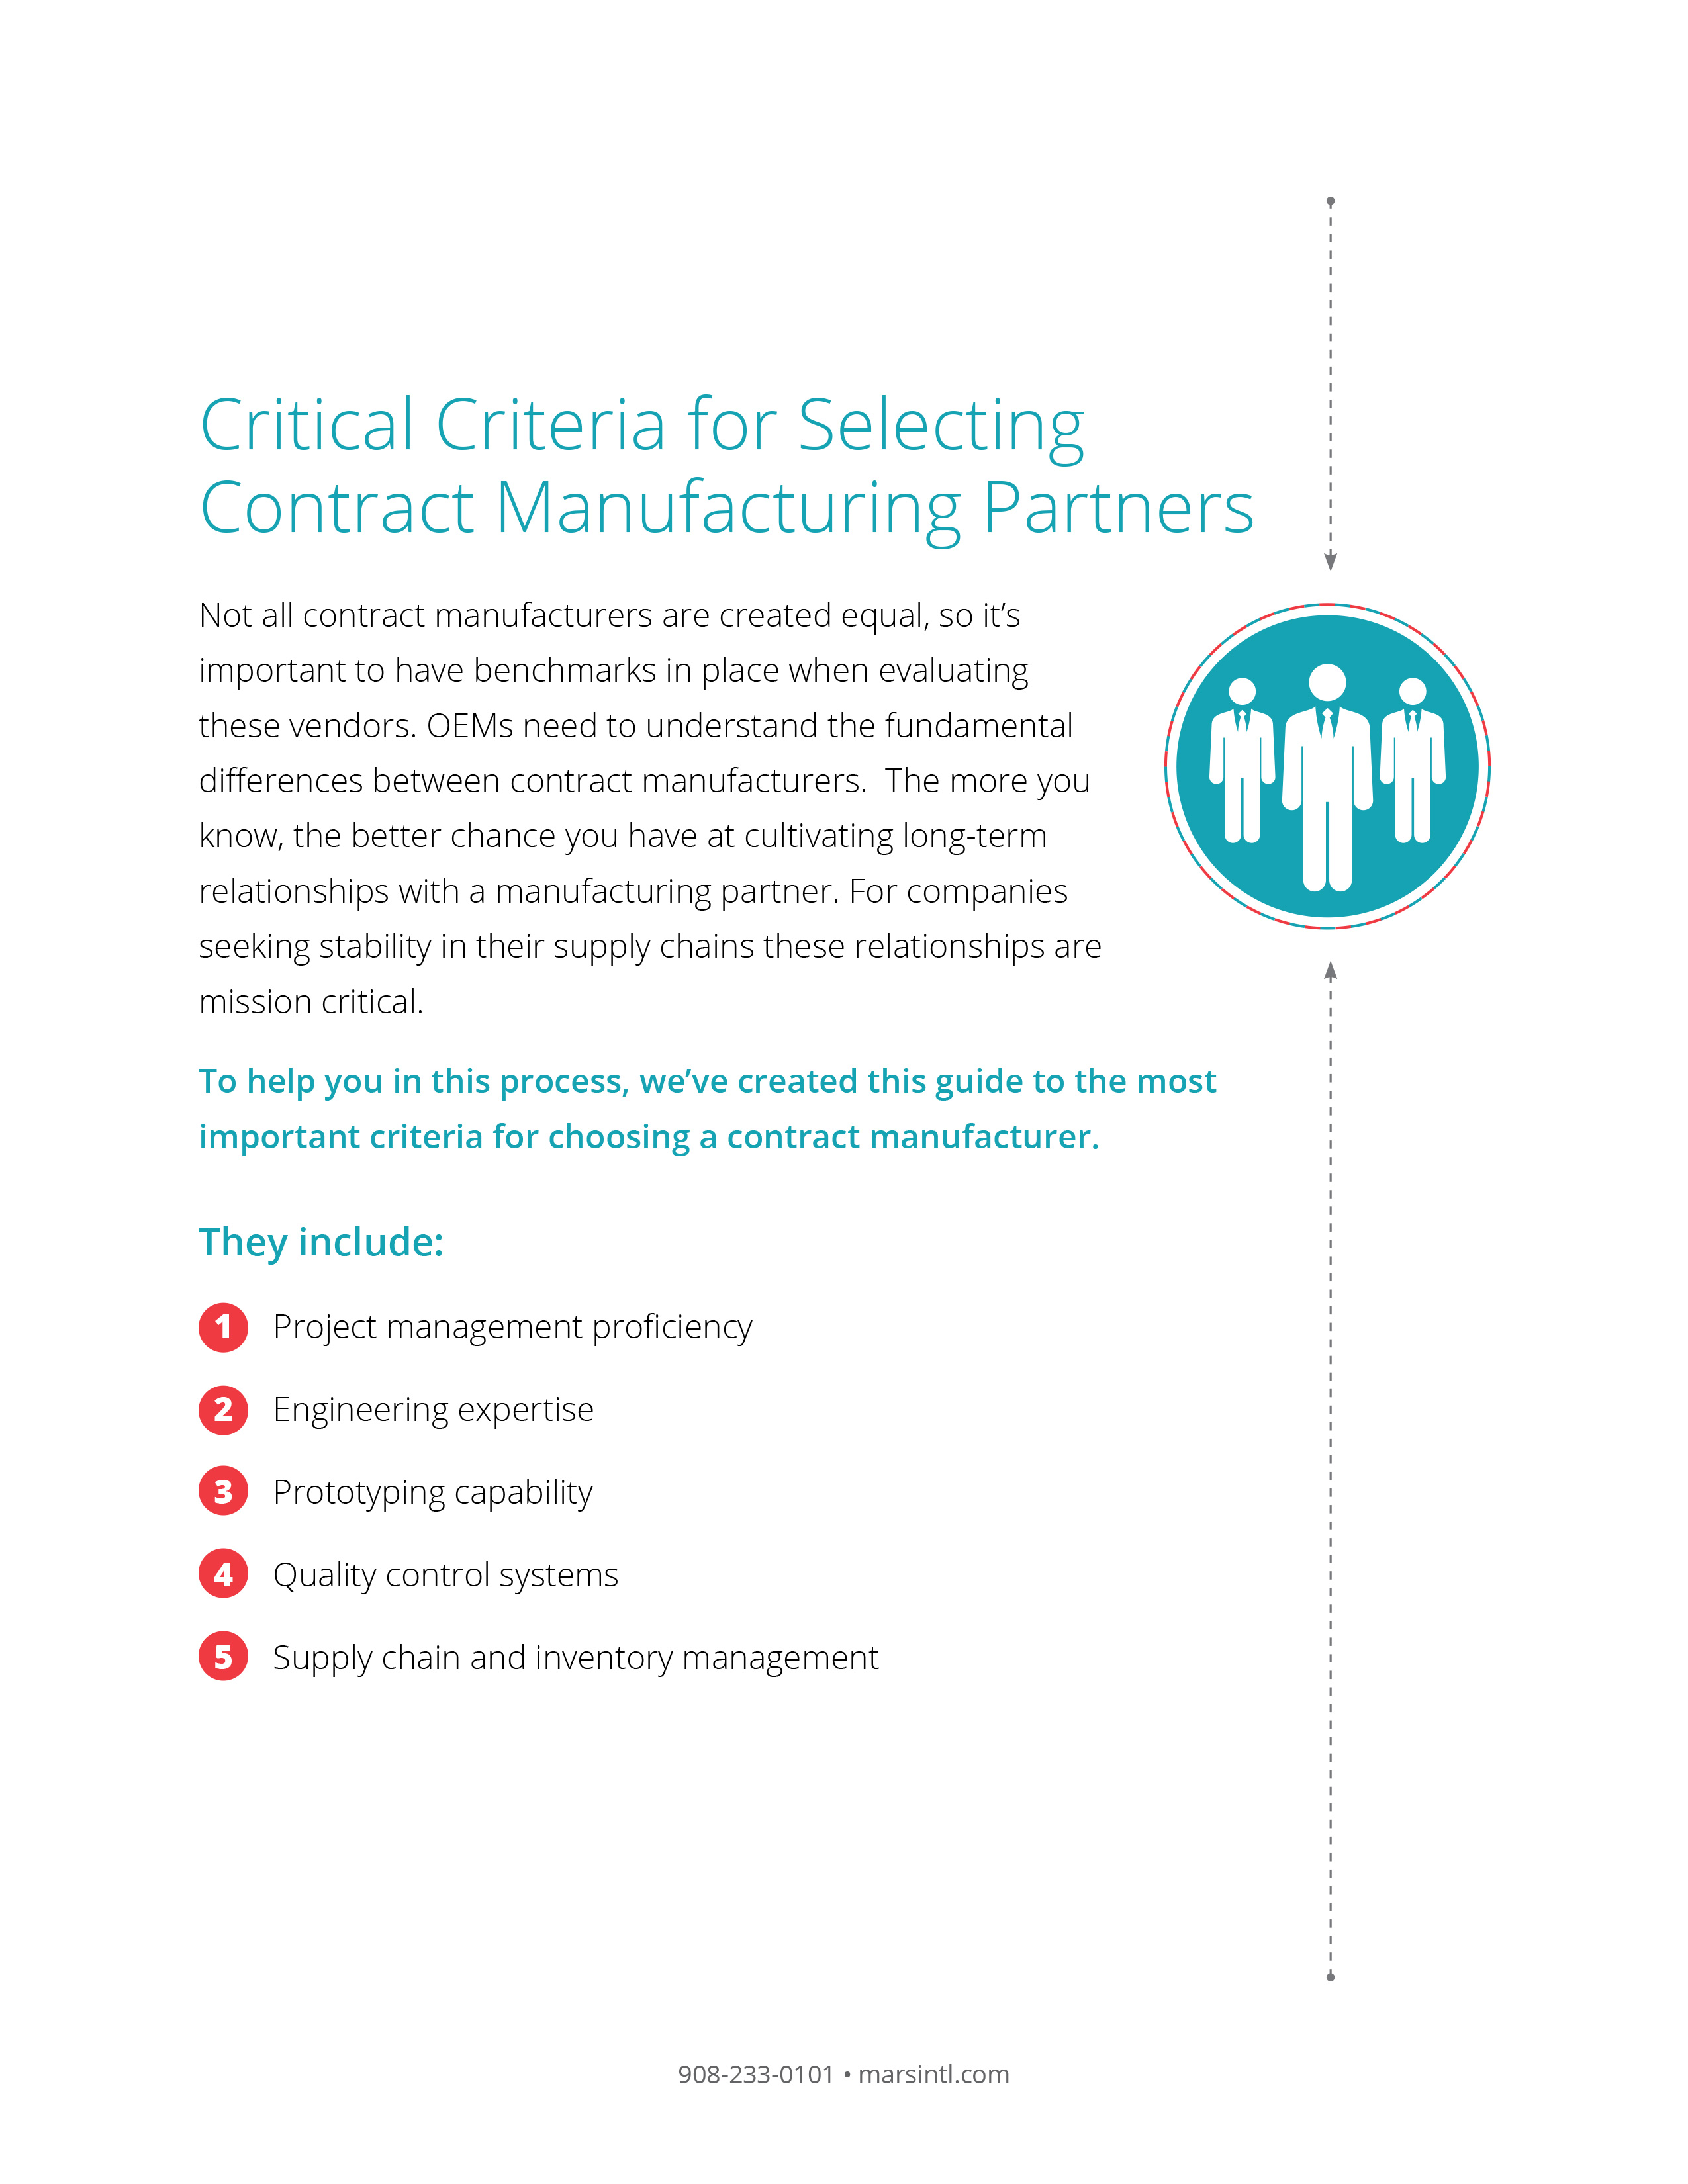 Critical Criteria for Selecting Contract Manufacturing Partners